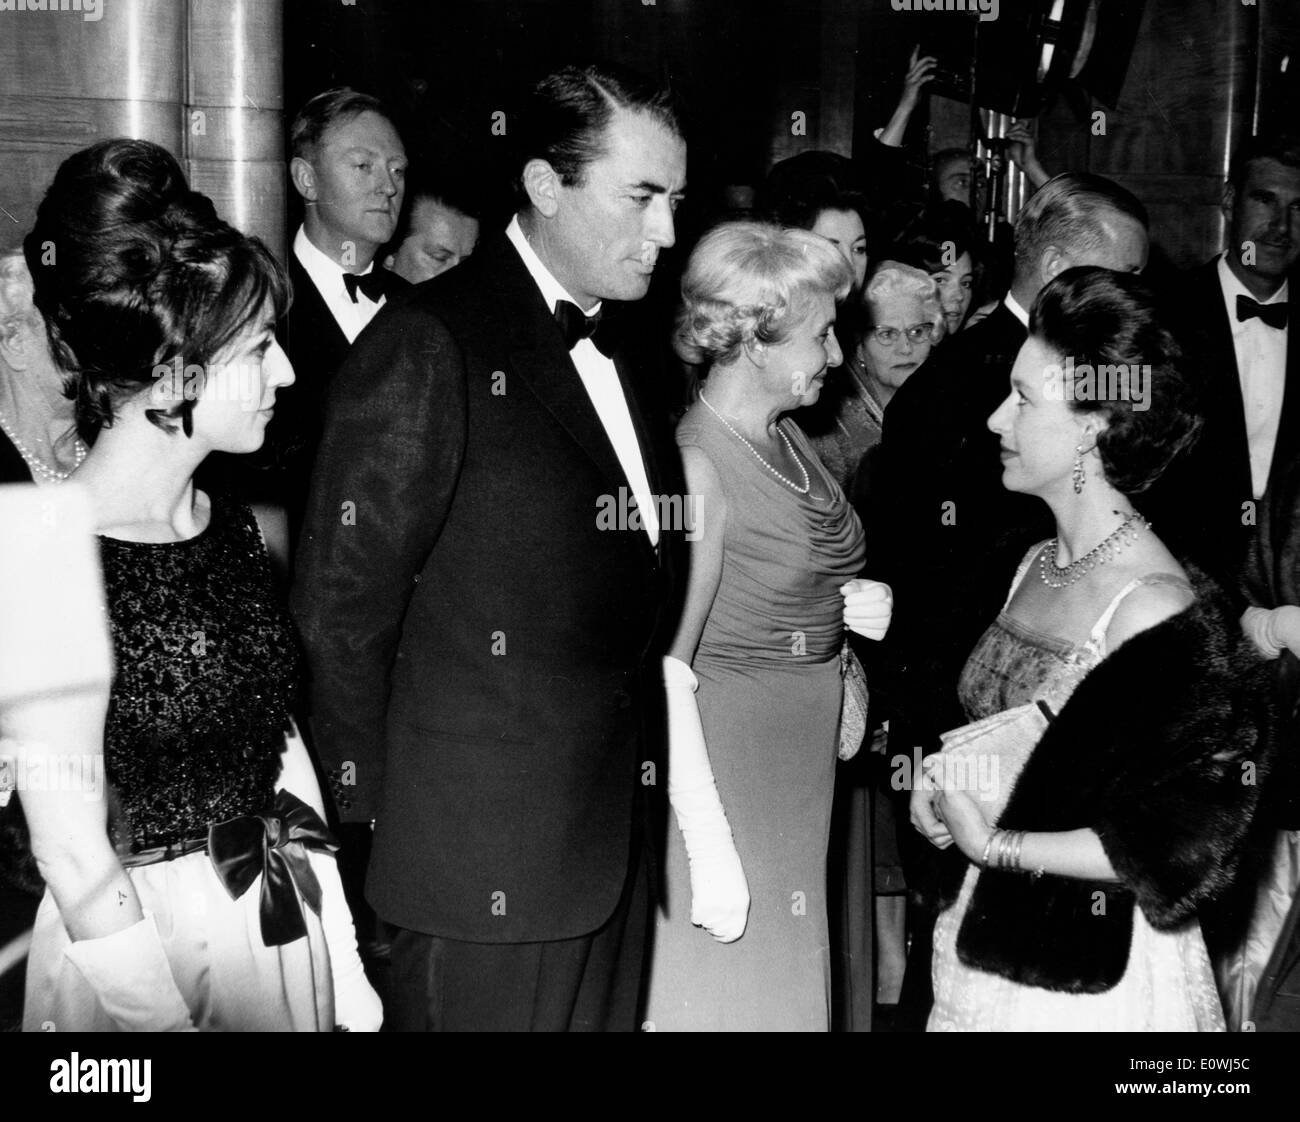 Actor Gregory Peck at the premiere of 'To Kill a Mockingbird' - Stock Image